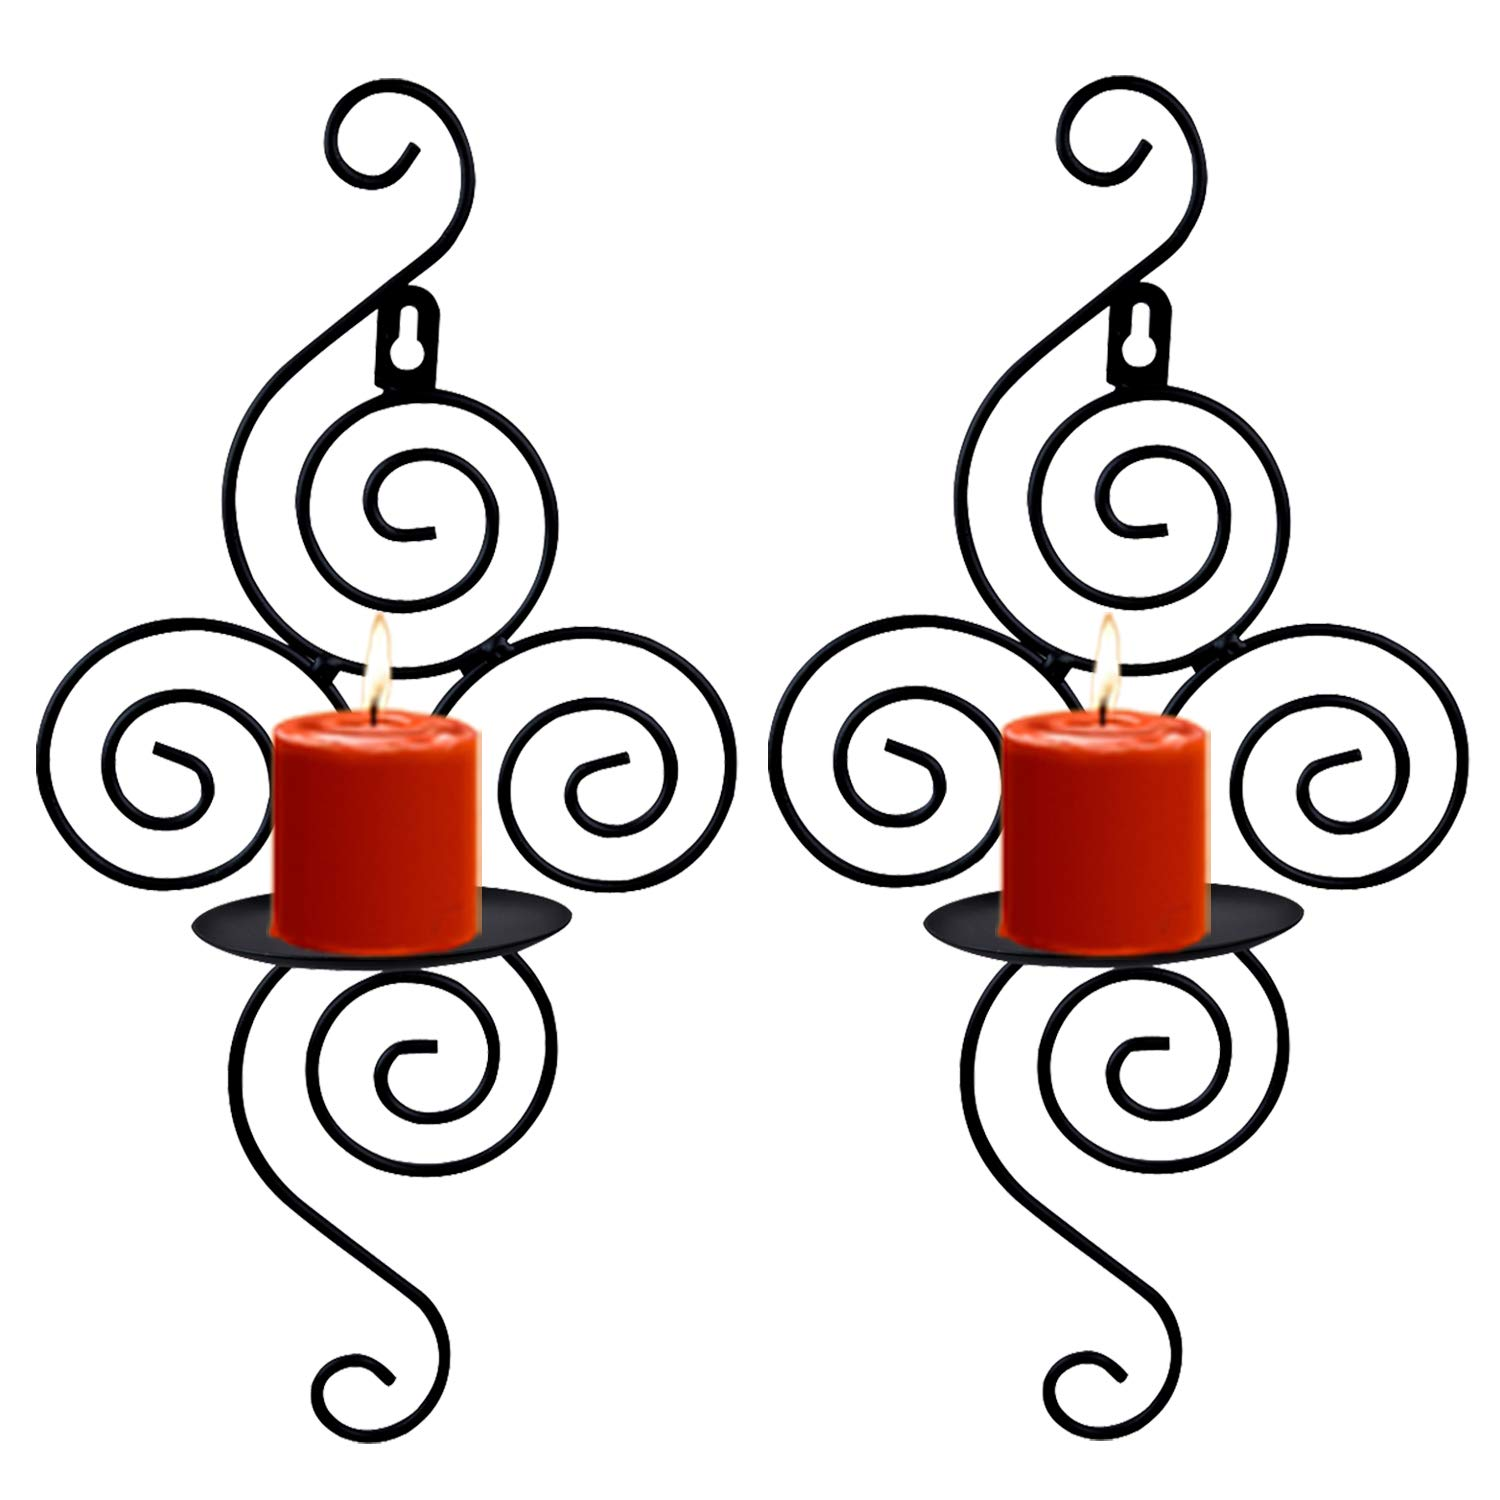 Wall Sconces Candle Holder, Kathy Set of 2 Elegant Swirling Iron Hanging Wall Mounted Decorative Candle Sconce for Living Room Home Decorations,Weddings,Event,Black